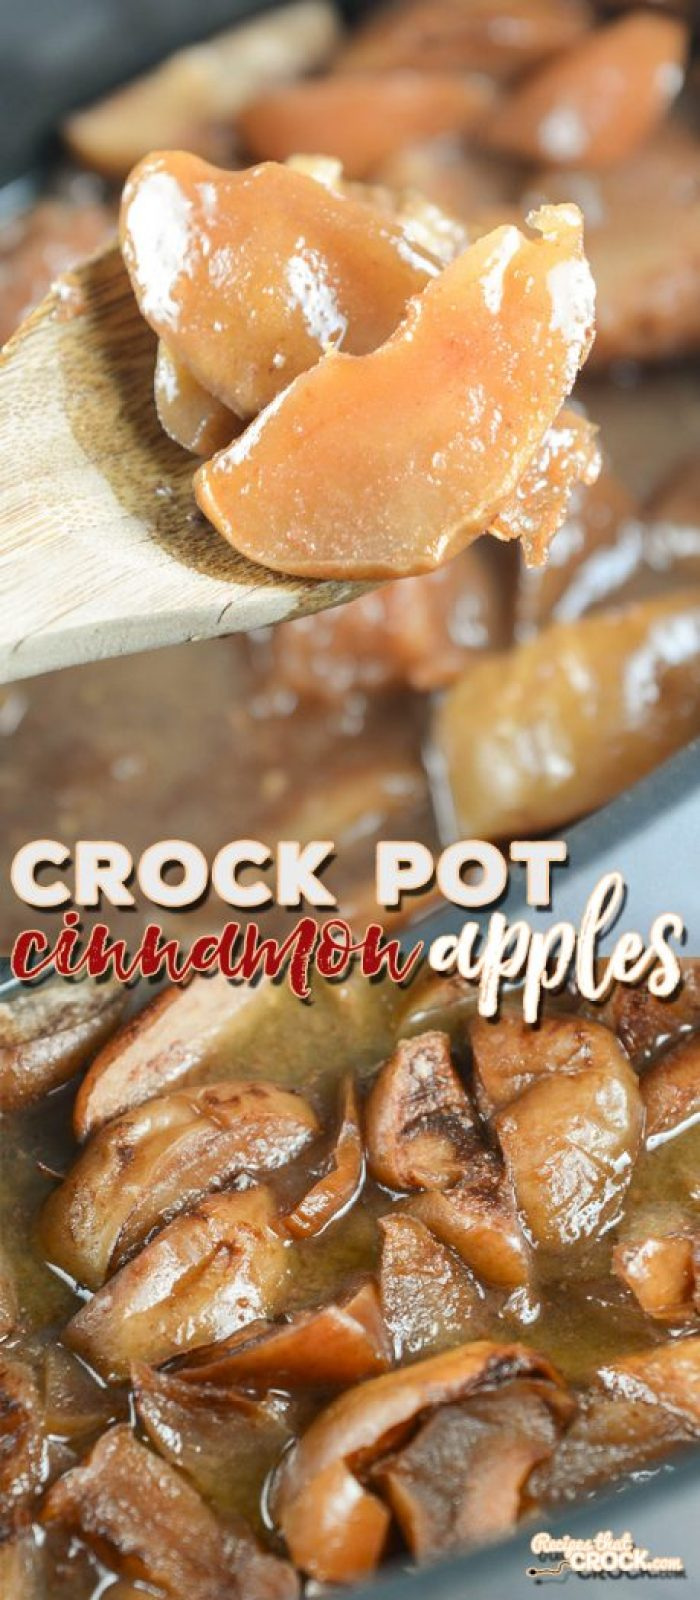 Are you looking for a great fresh apple recipe? Our Crock Pot Cinnamon Apples are the perfect family dinner side dish recipe!